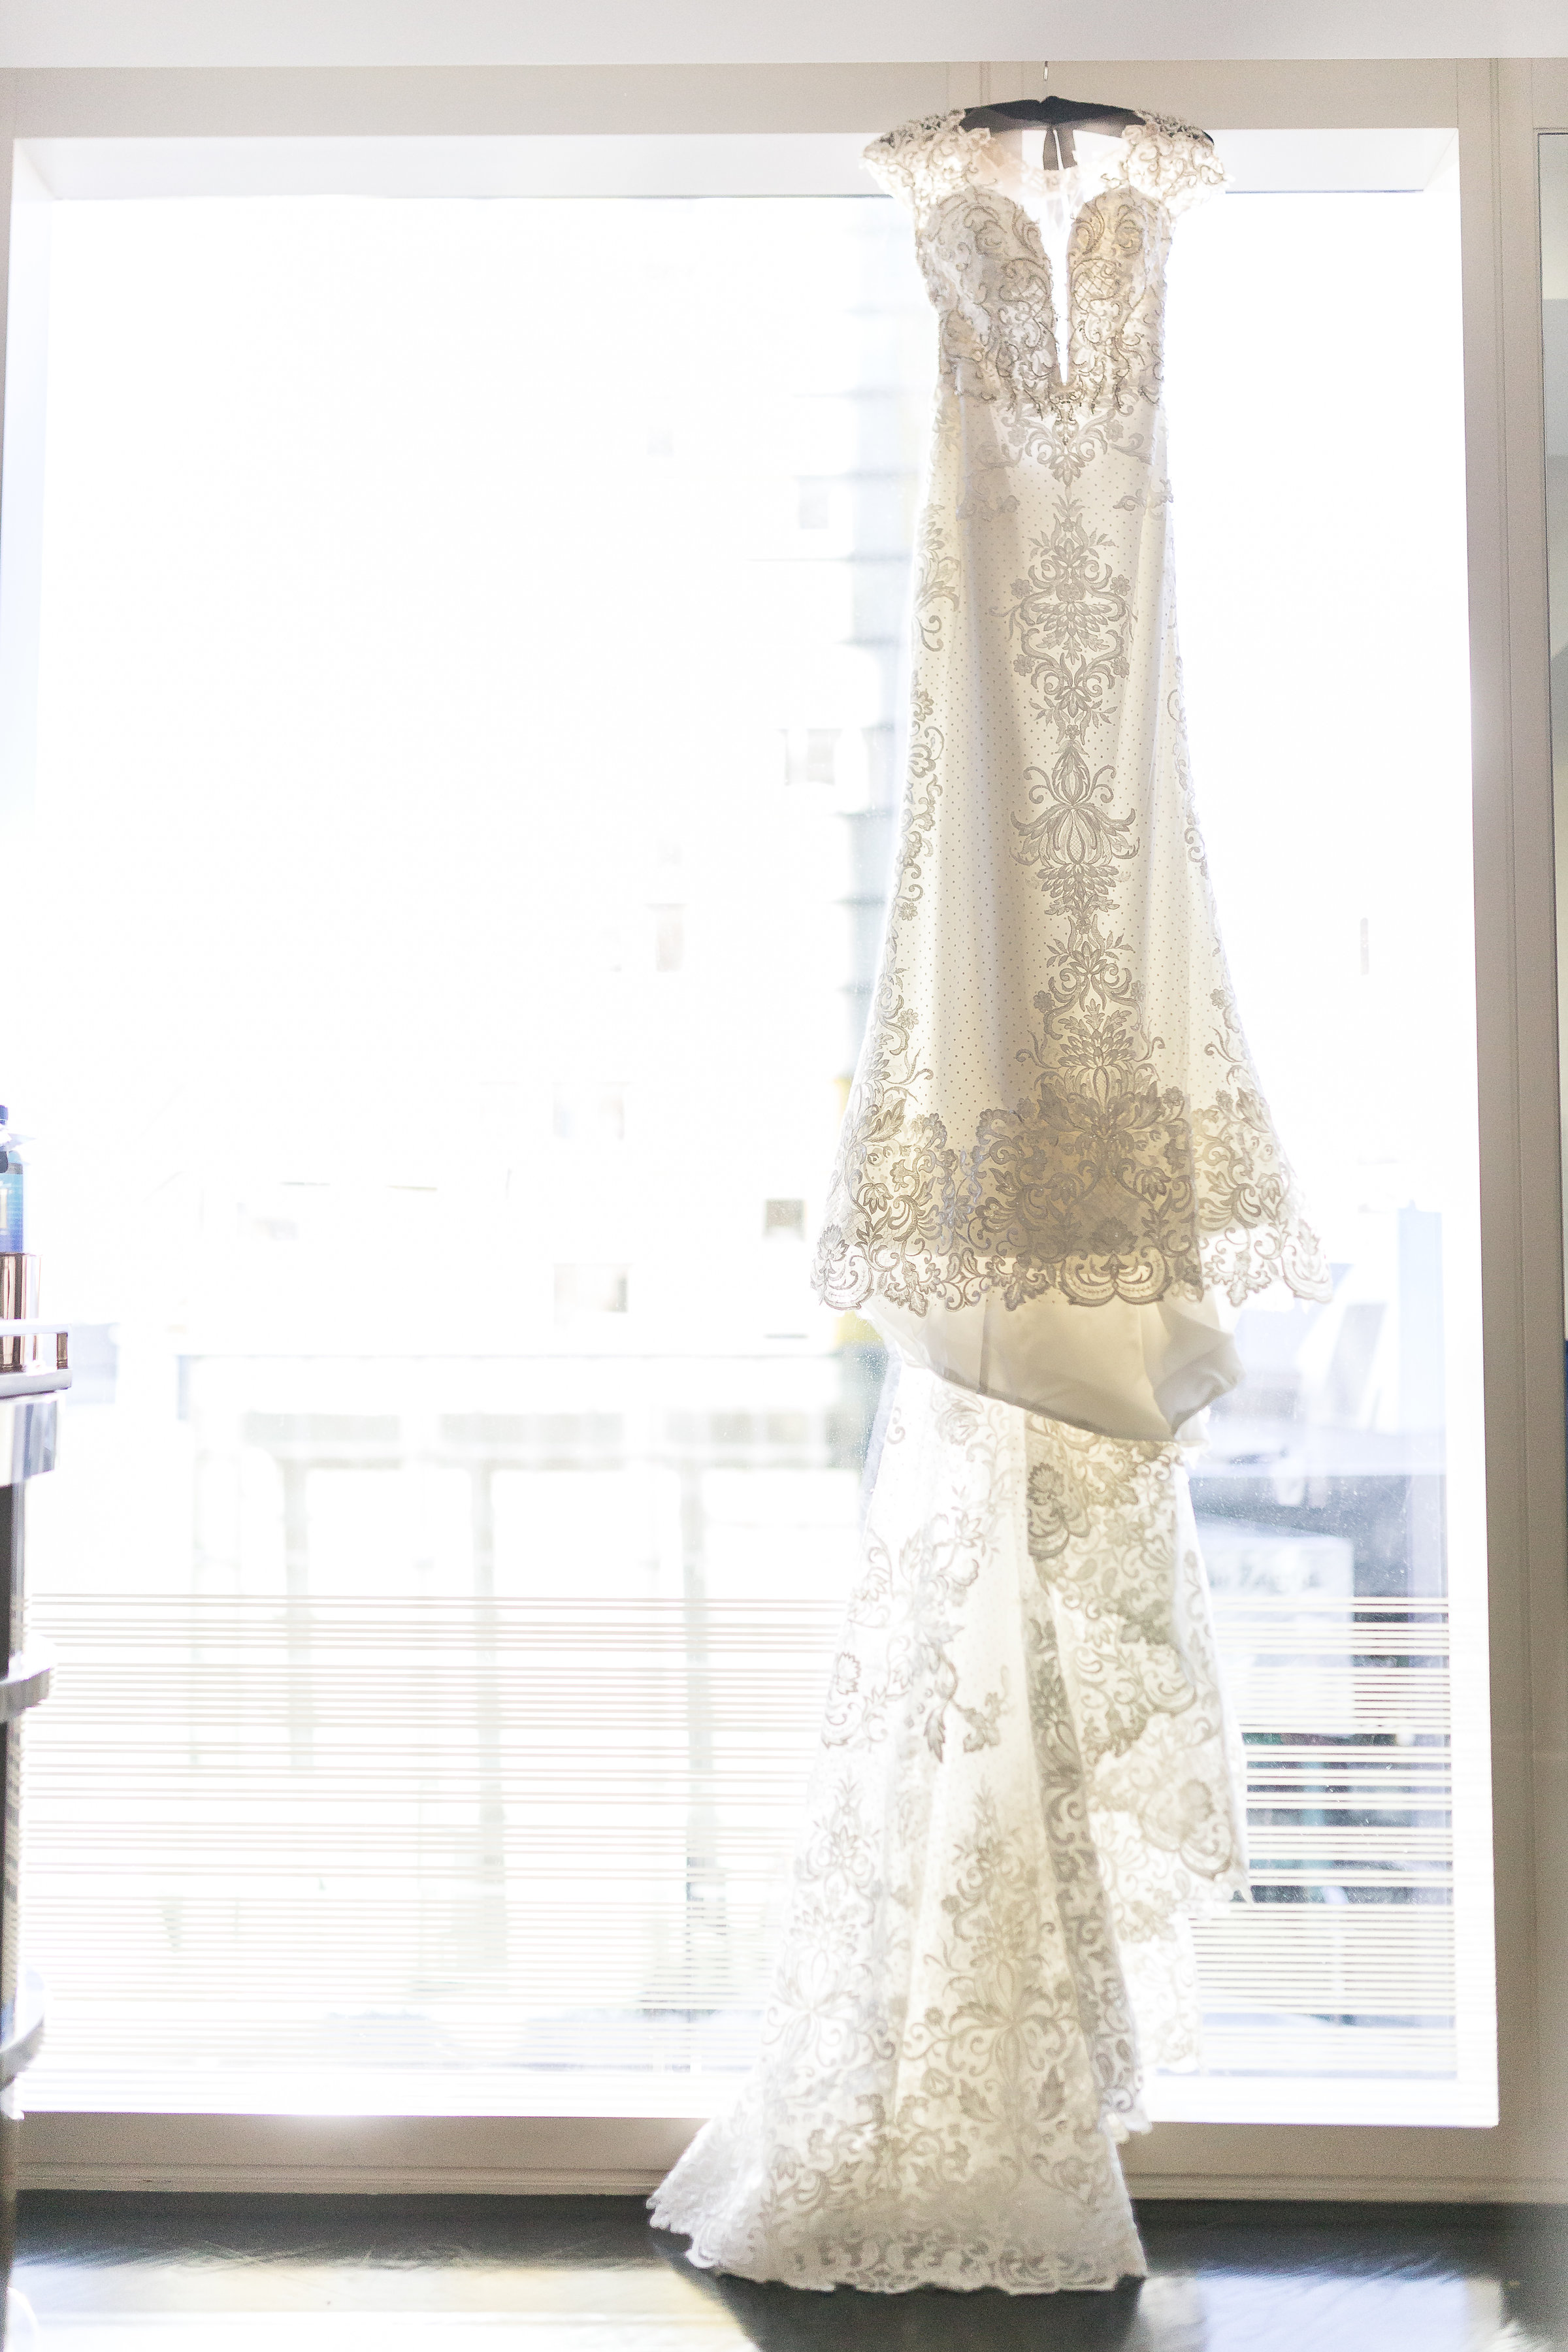 lace wedding dress.Wedding Planner: Andrea Eppolito Events    Photography  Brian Leahy    Videography  HOO Films    Venue & Catering:  Mandarin Oriental  / Waldorf Astoria   Floral & Decor: Destinations by Design    Lighting: LED Unplugged    Music:  DJ Breeze II    Hair & Make Up: Amelia C & Co